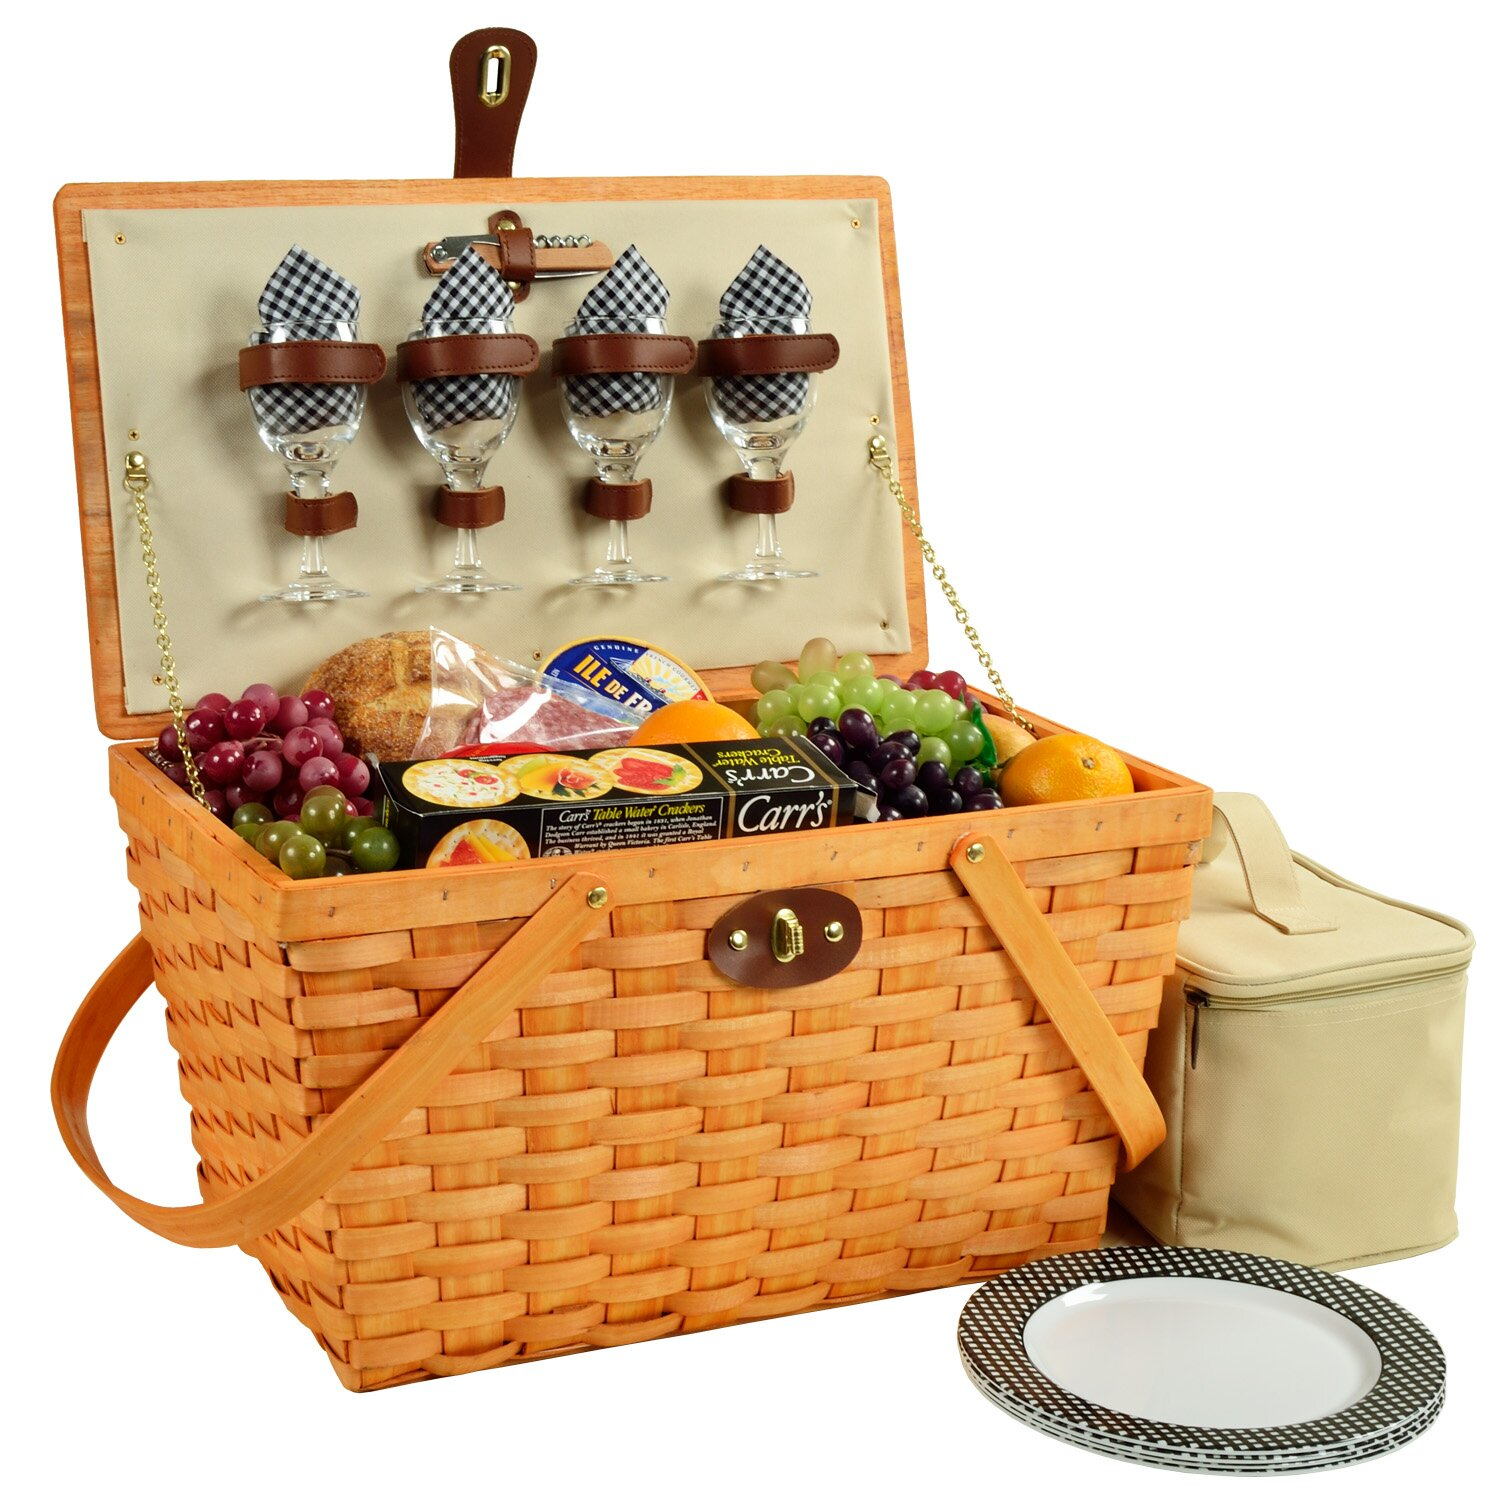 Amberley Ascot 4 Person Picnic Basket : Picnic at ascot settler person basket reviews